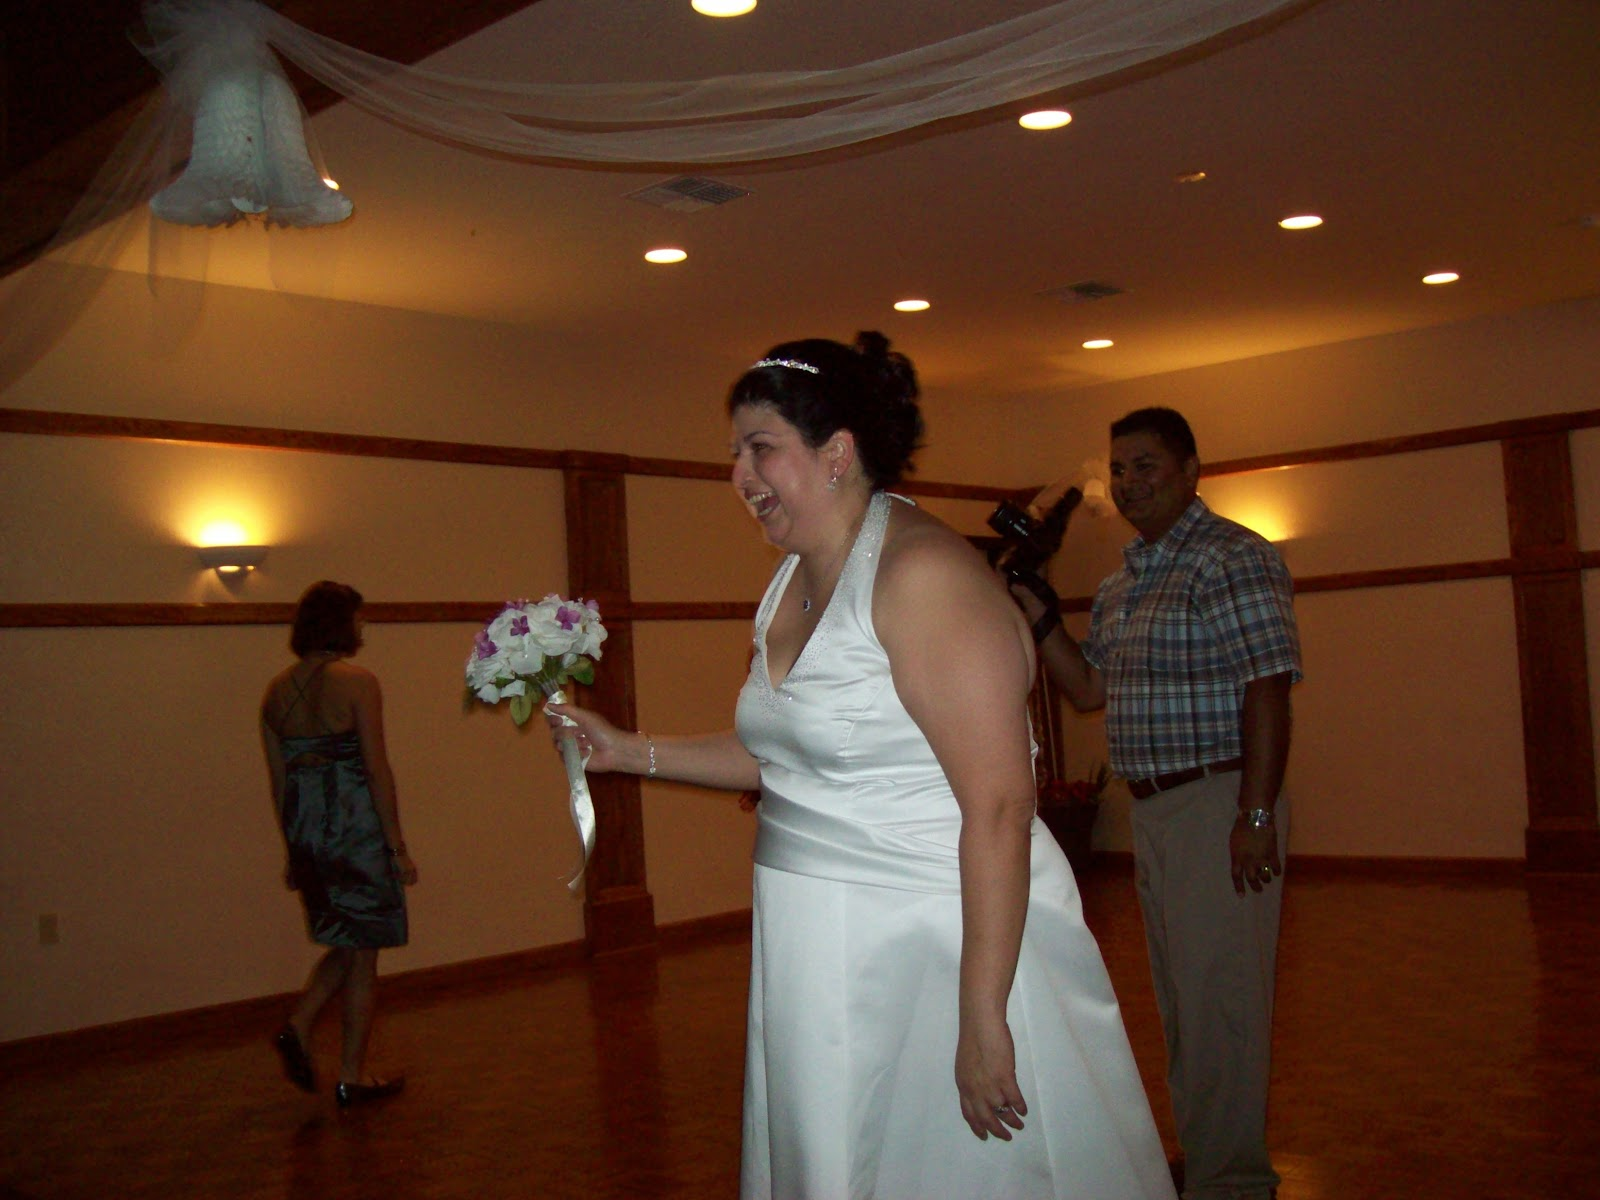 Diane Castillos Wedding - 101_0335.JPG